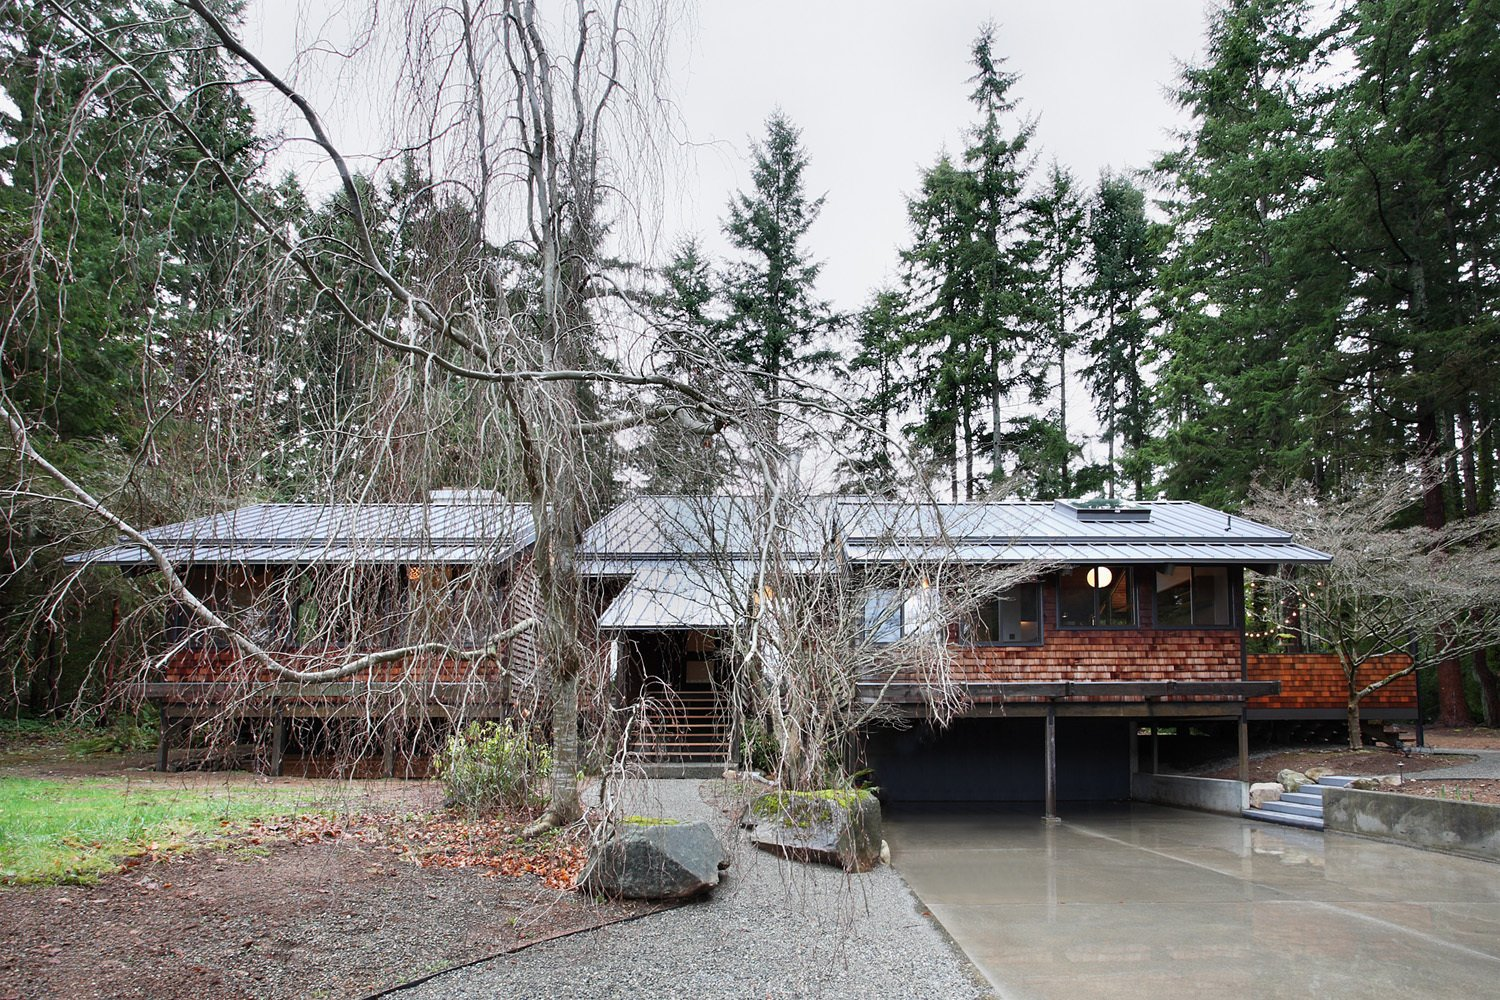 Nestled in a grove of Douglas fir trees, the house stands on series of wooden pylons in a Japanese-inspired fashion. Residents ascend the stairs, center, to reach its single floor. The exterior wooden shingles were intact and are original to the design.  Zema Redux by Zachary Edelson